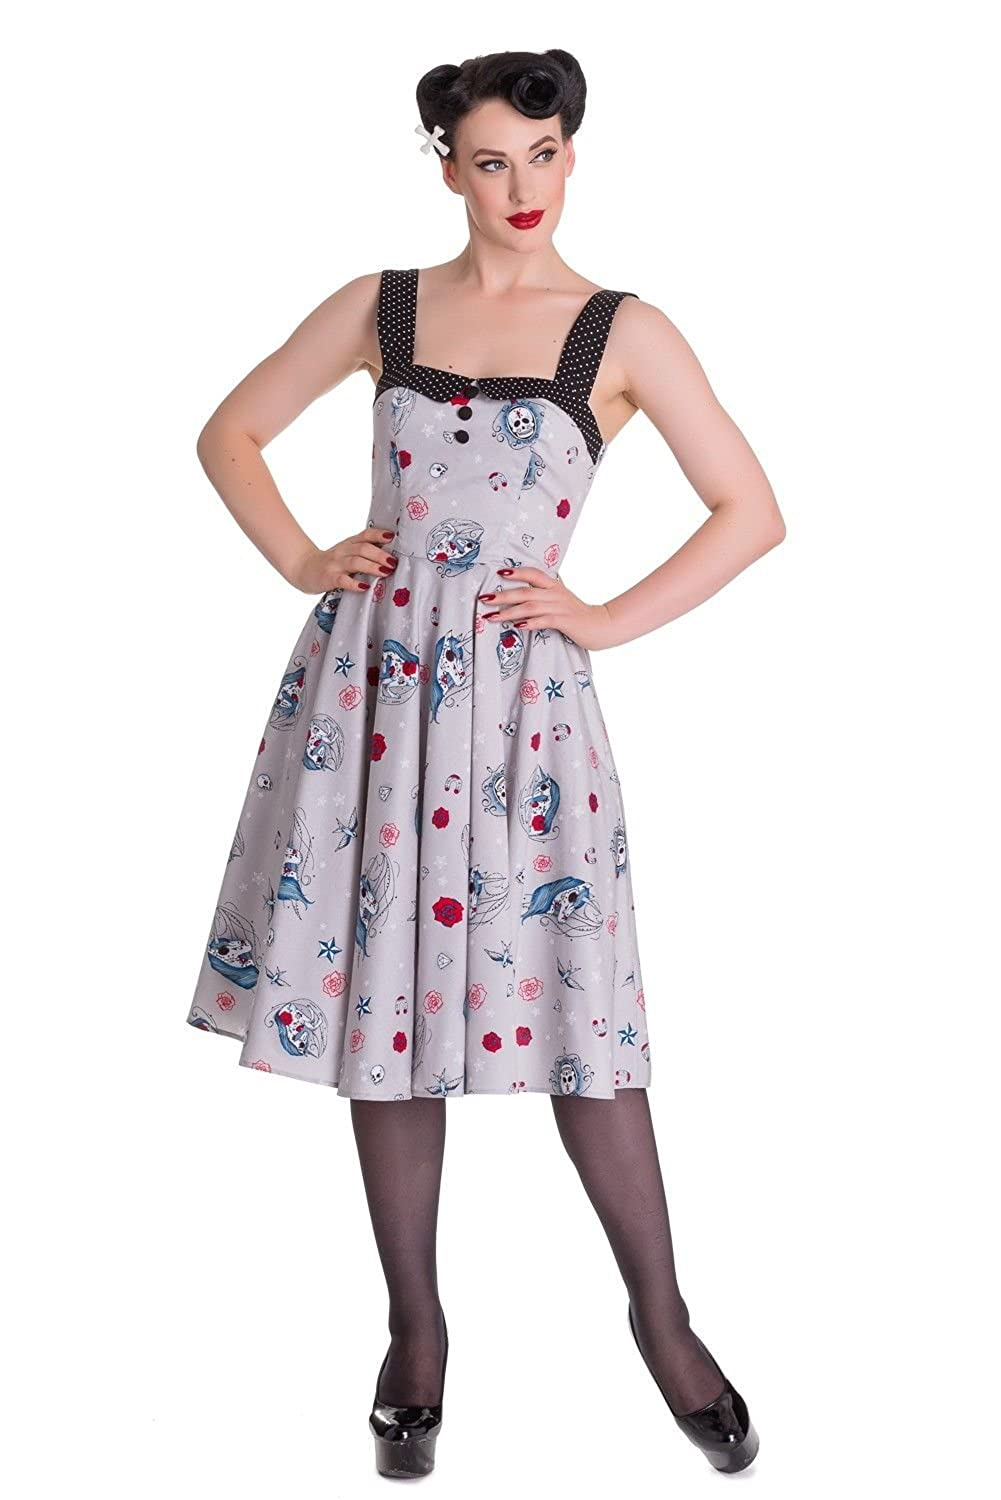 1950s Swing Dresses Hell Bunny Zoey 50s Rockabilly Punk Dress $34.99 AT vintagedancer.com